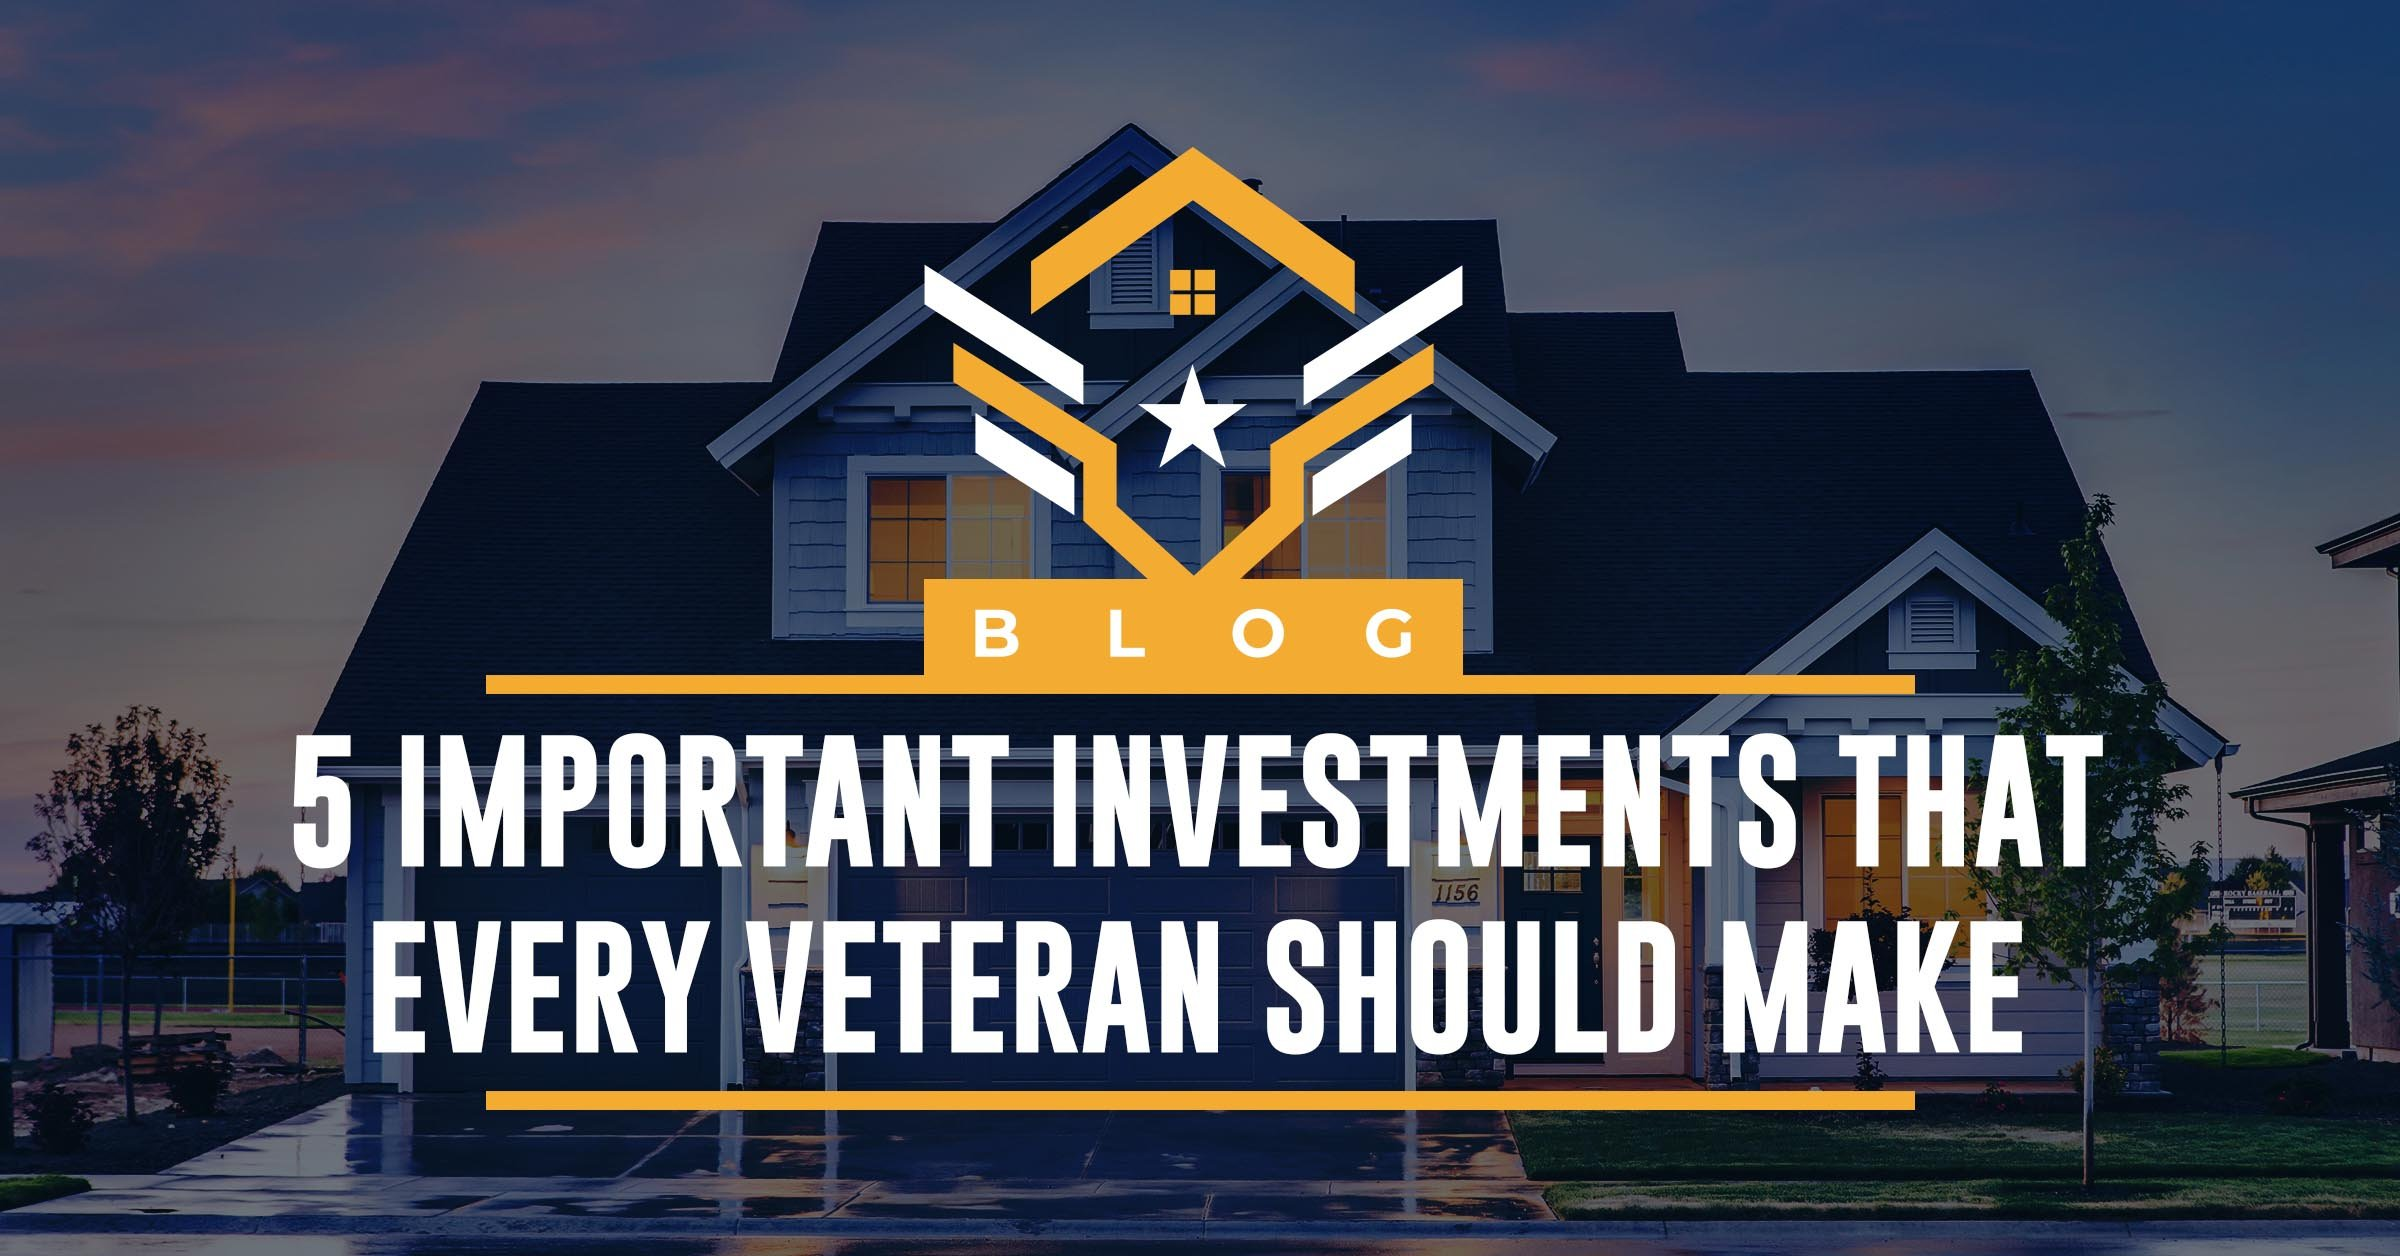 5-important-investments-that-every-veteran-should-make